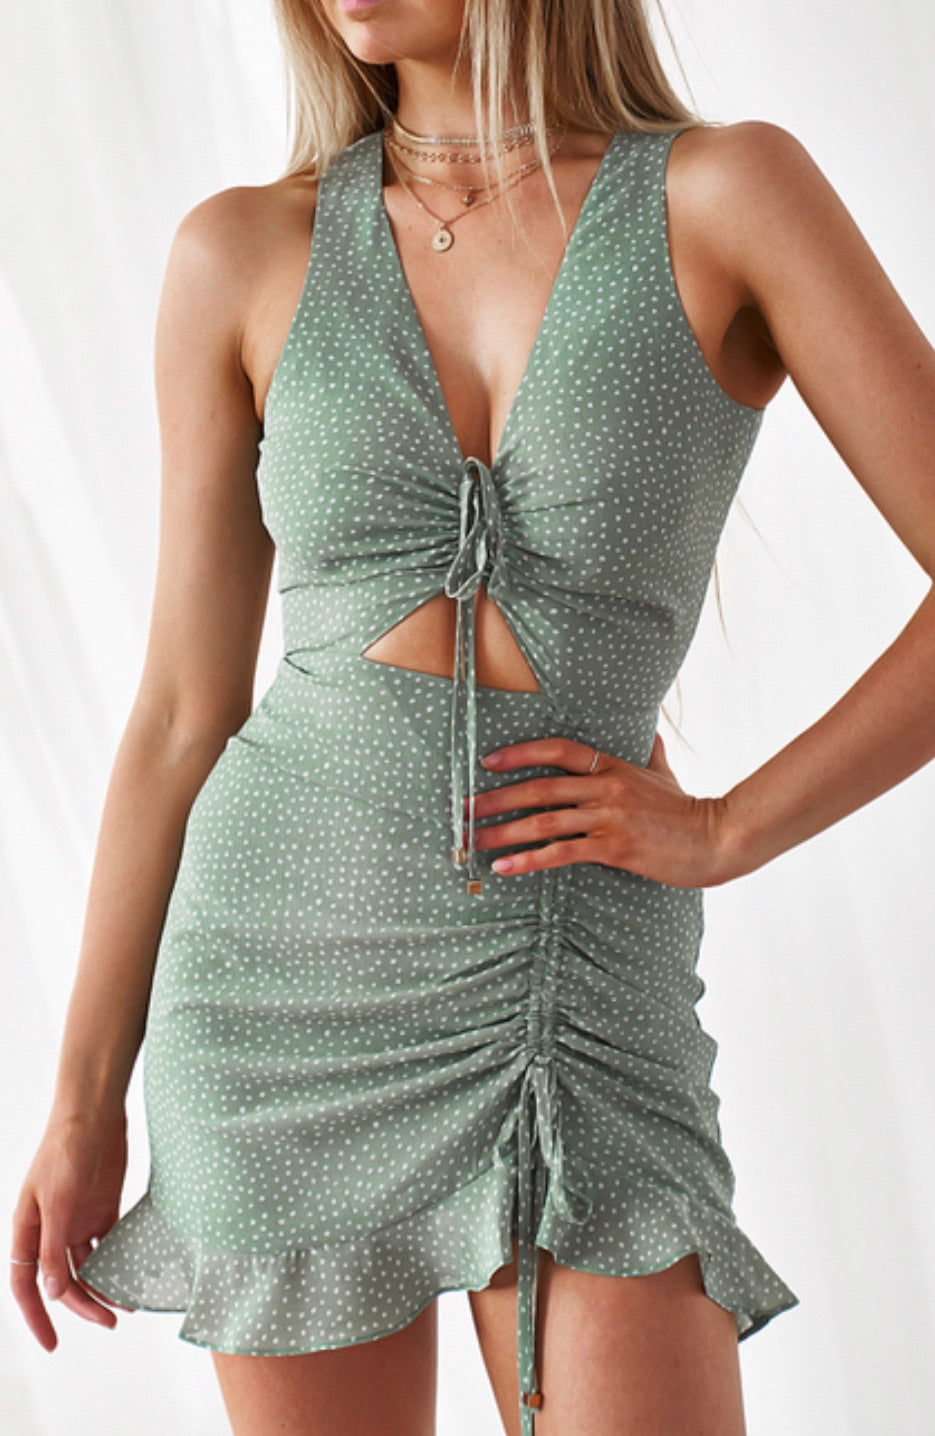 Lola pistachio spot mini dress